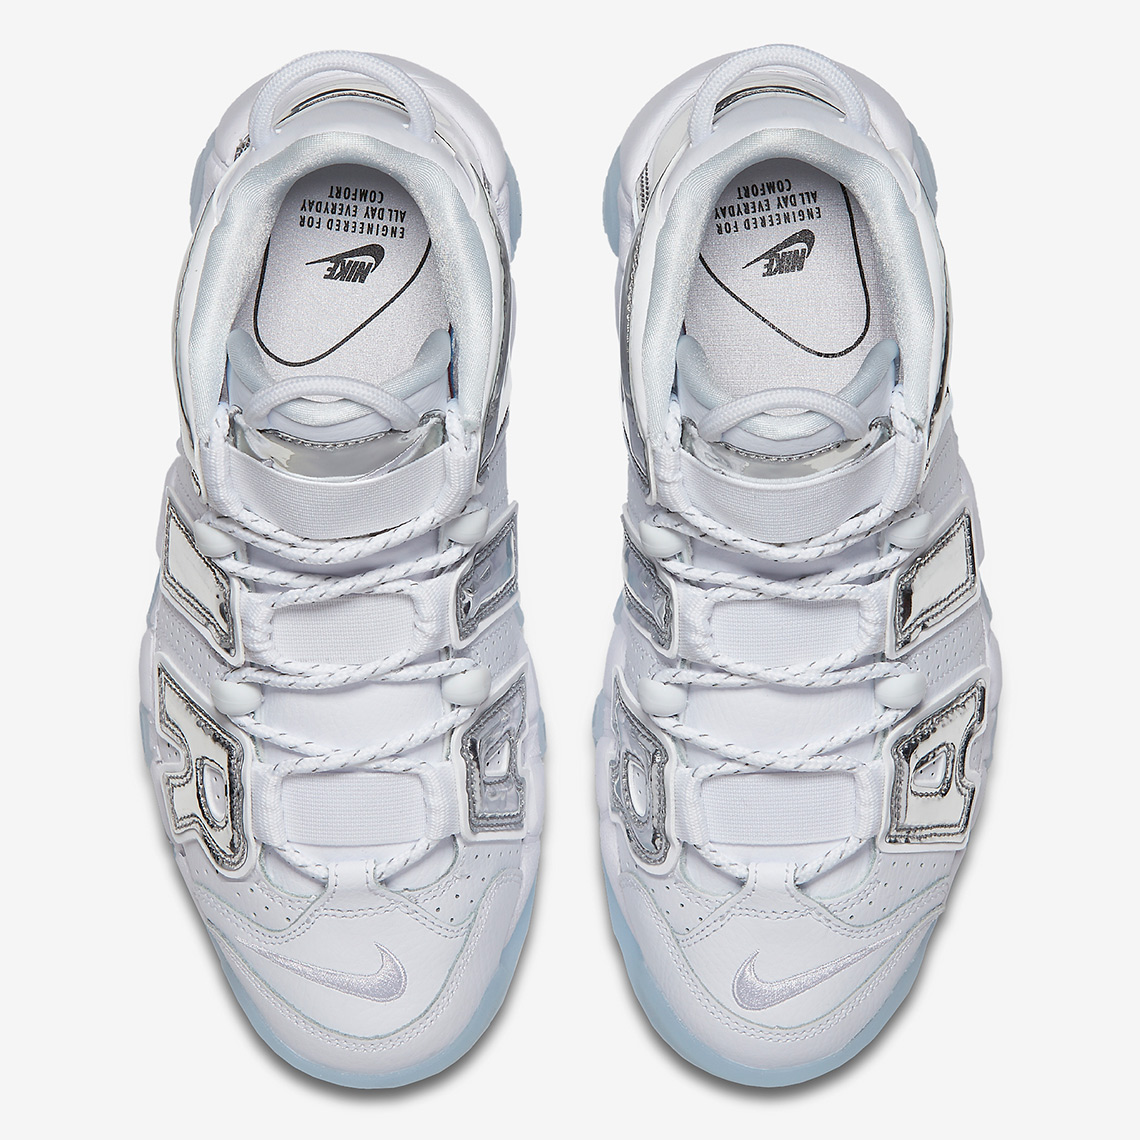 Nike Uptempo Release Dates 2018